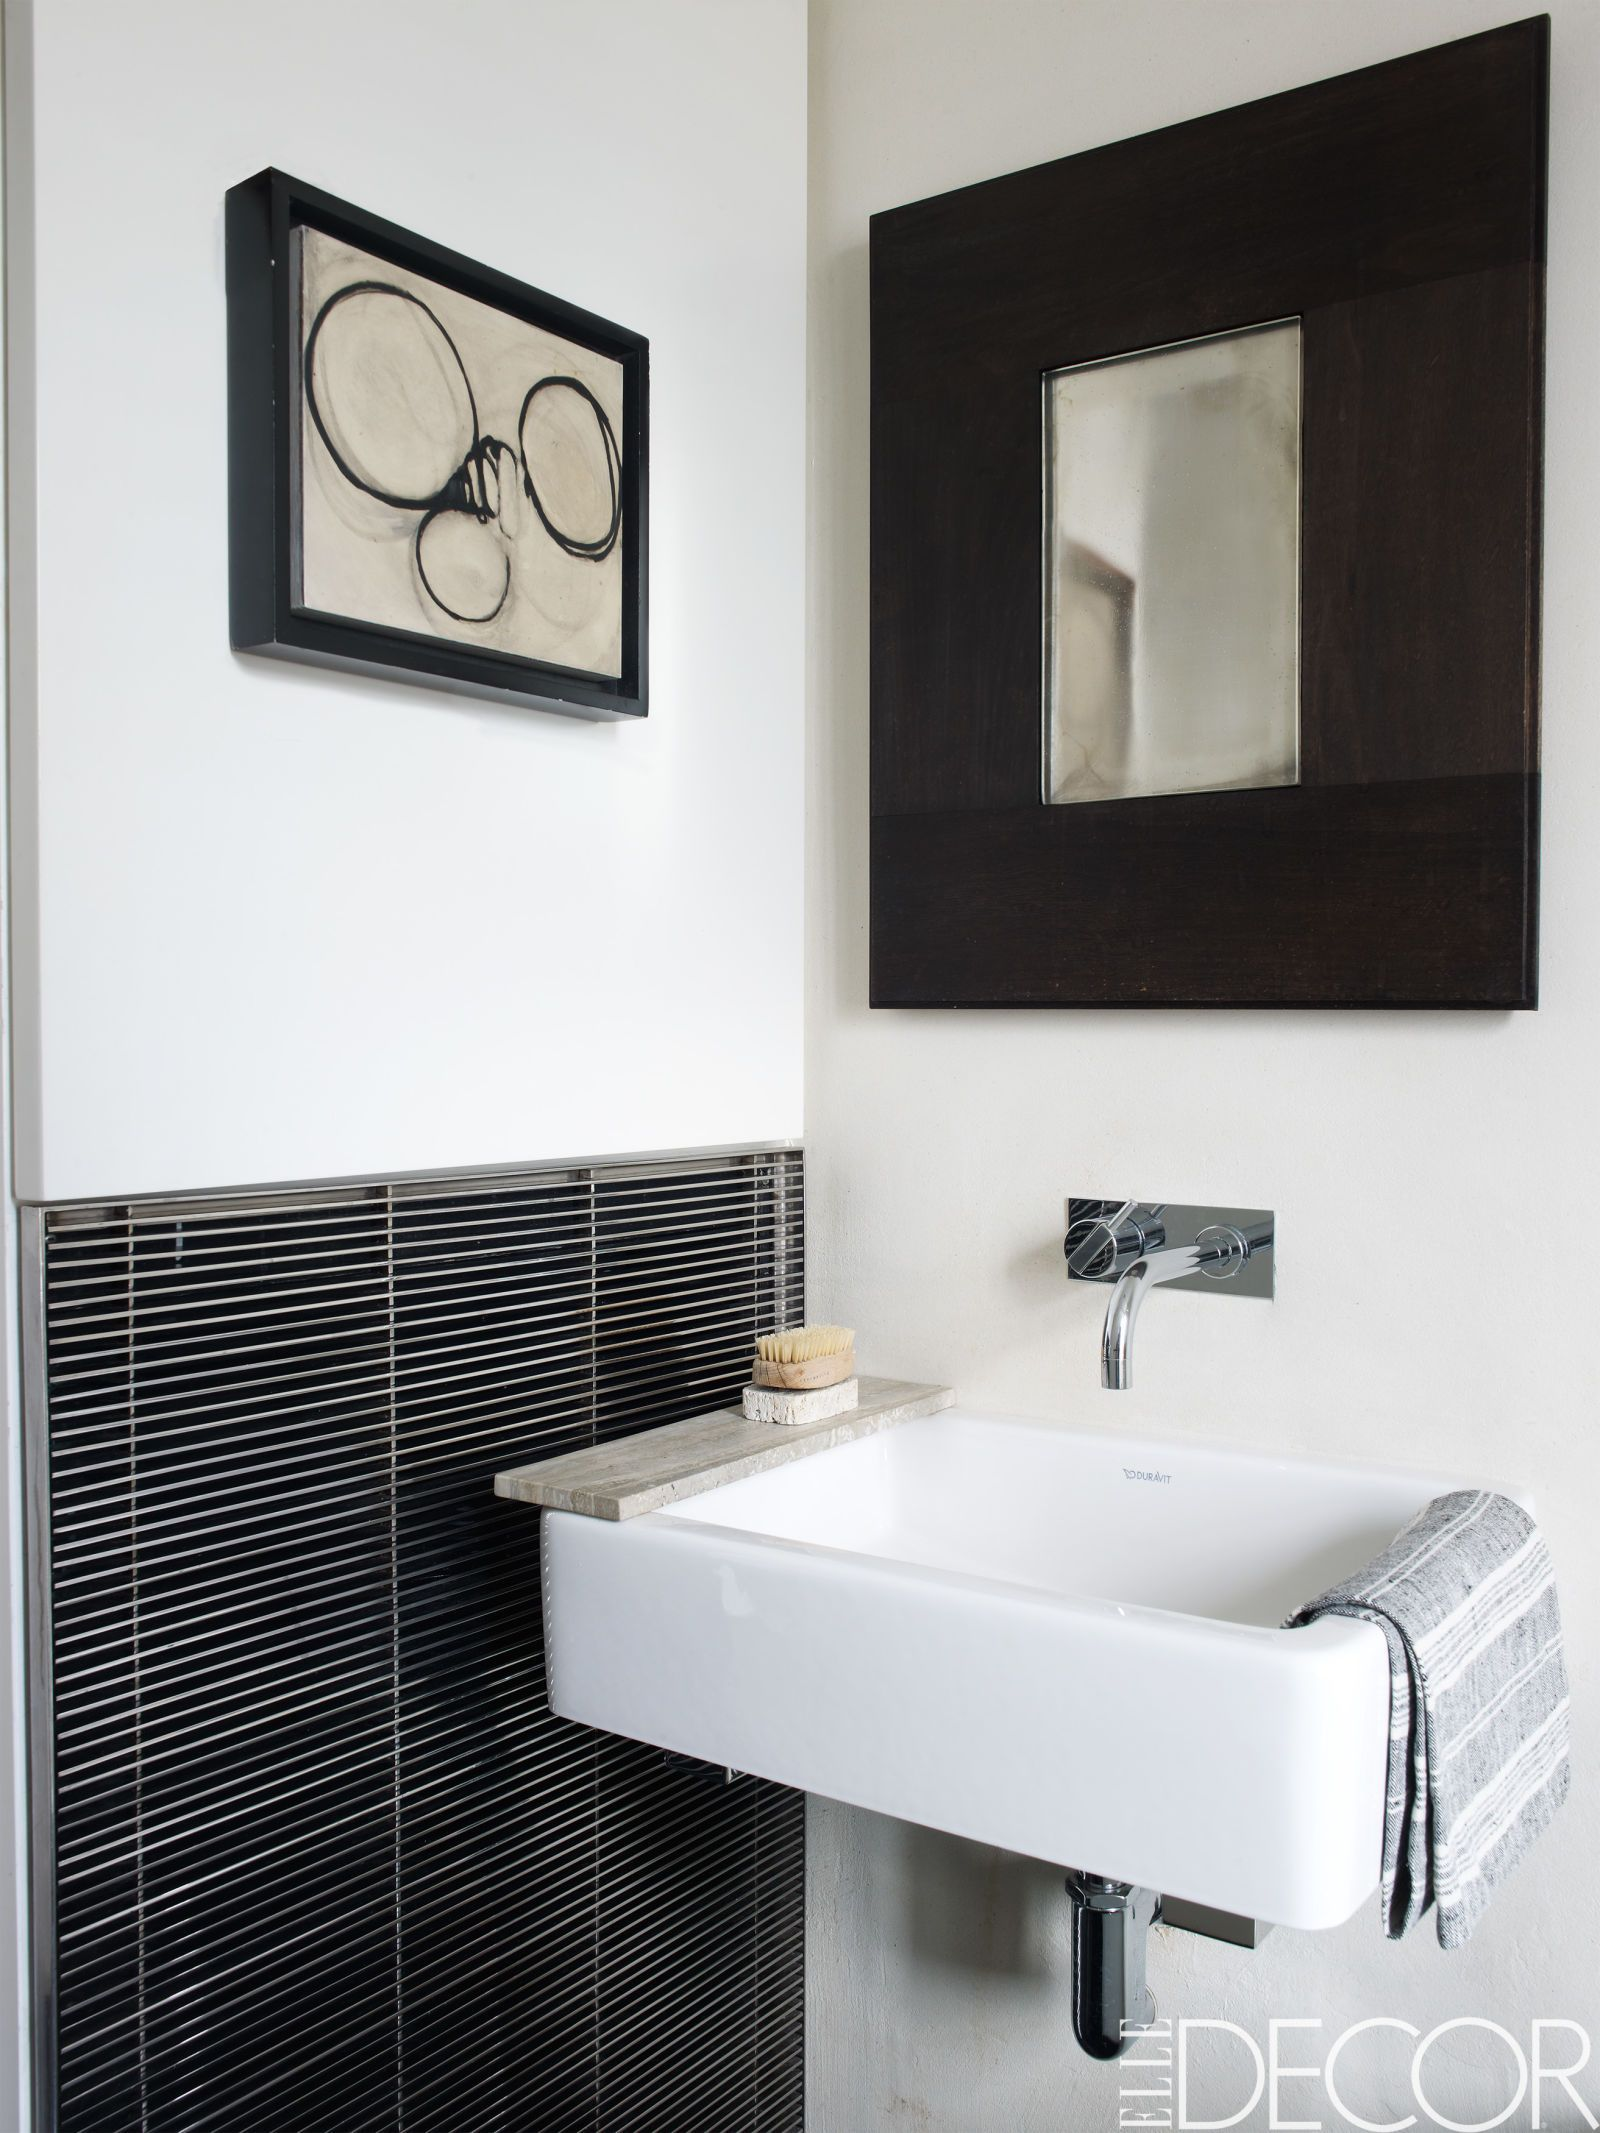 20 Ways to Get the Best Use of Space in your Bathroom